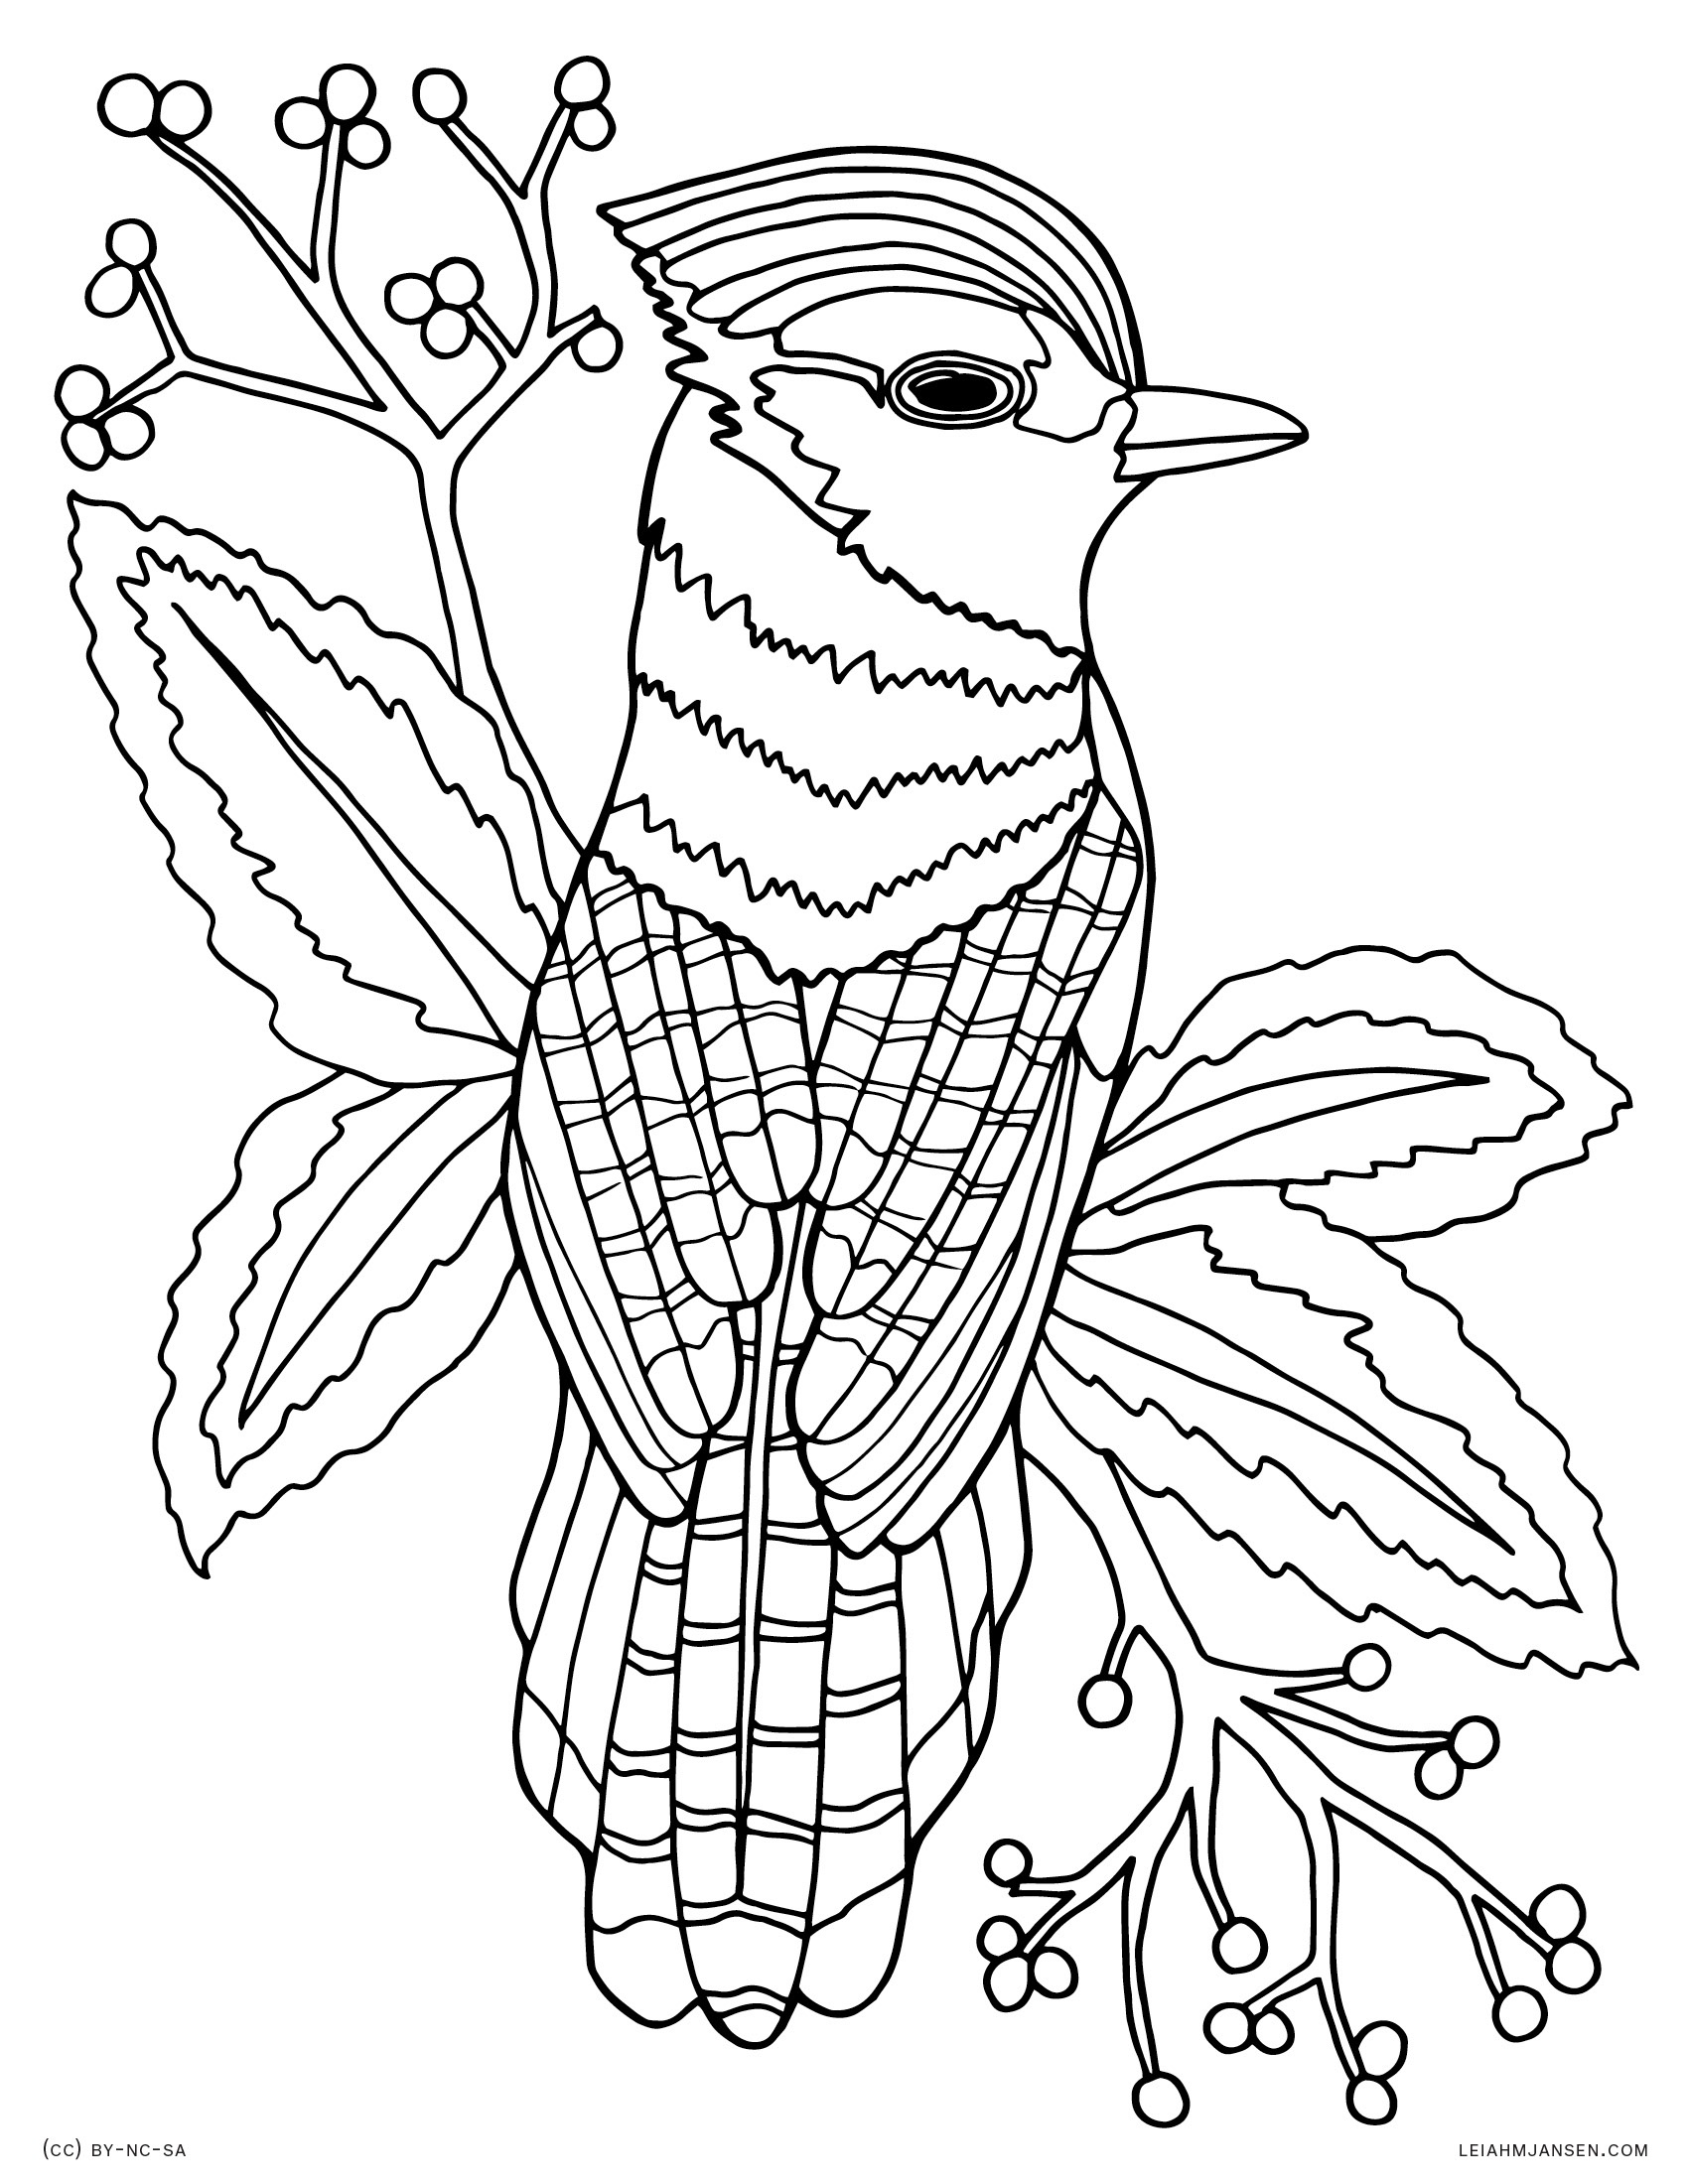 Coloring Pages - Free Printable Coloring Books For Adults